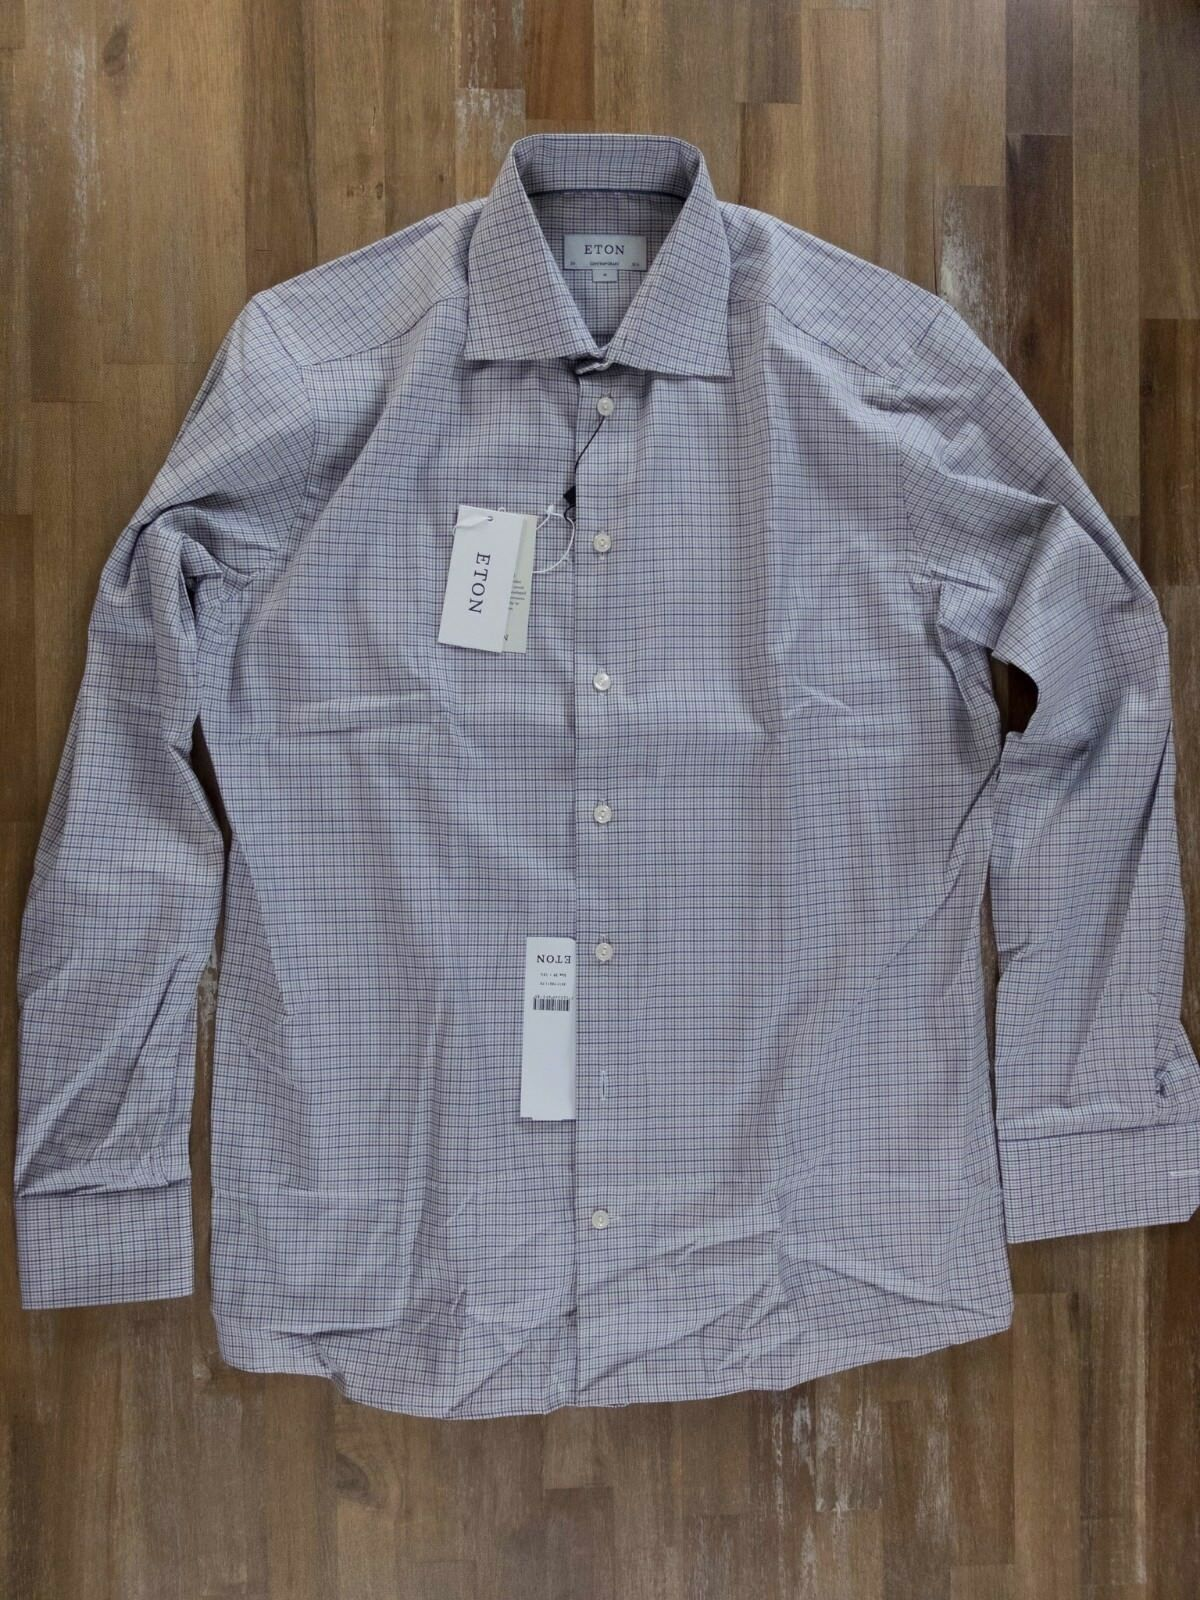 ETON of Sweden contemporary fit plaid shirt authentic - Size 39   15.5 - NWT